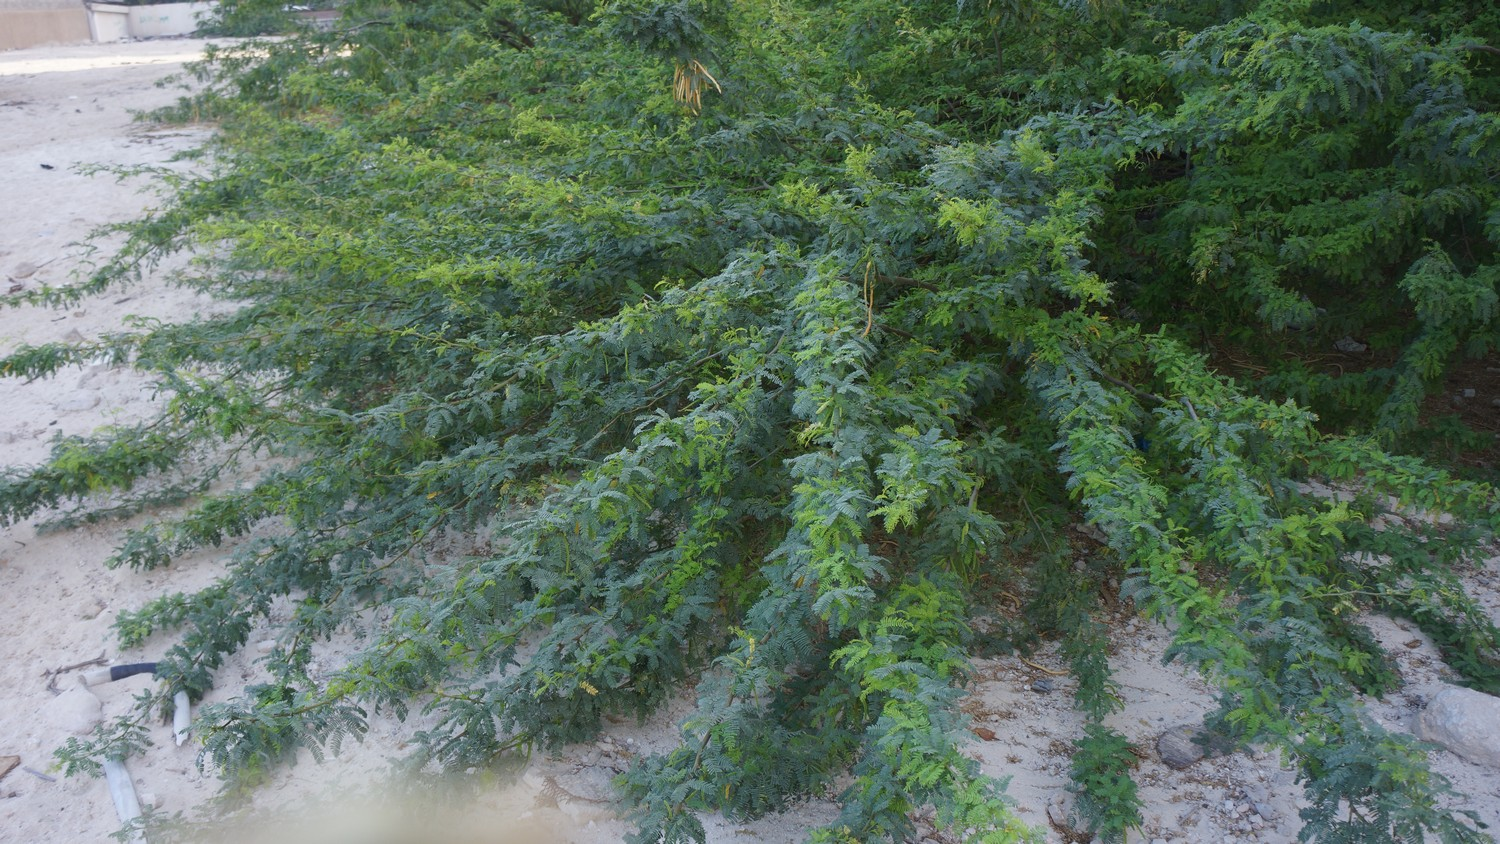 P. Juliflora Has A Low, Mounding Habit, Attractive From A Landscape Point Of